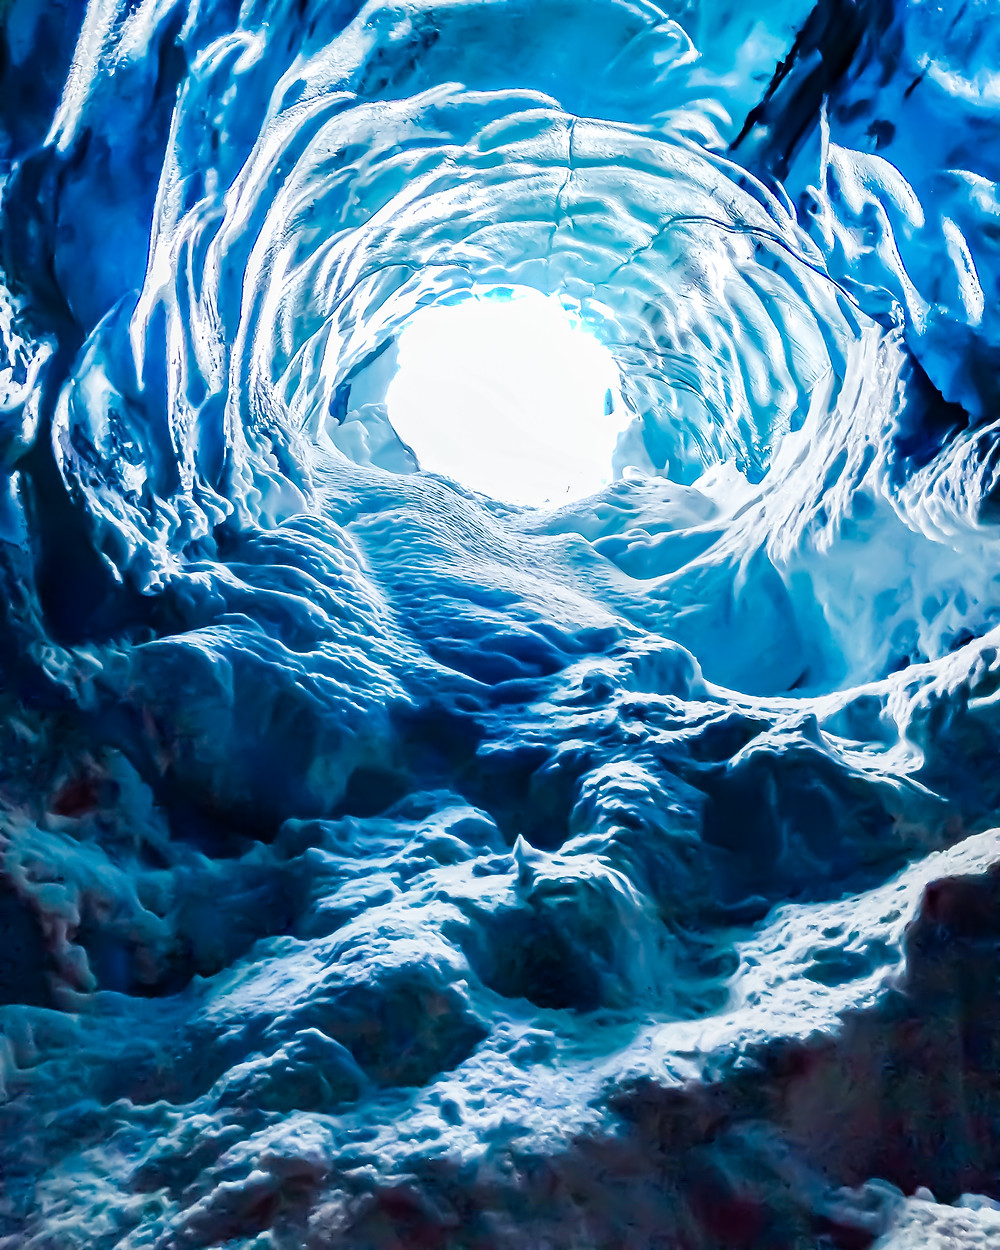 Blue Glacier Ice Caves in Iceland